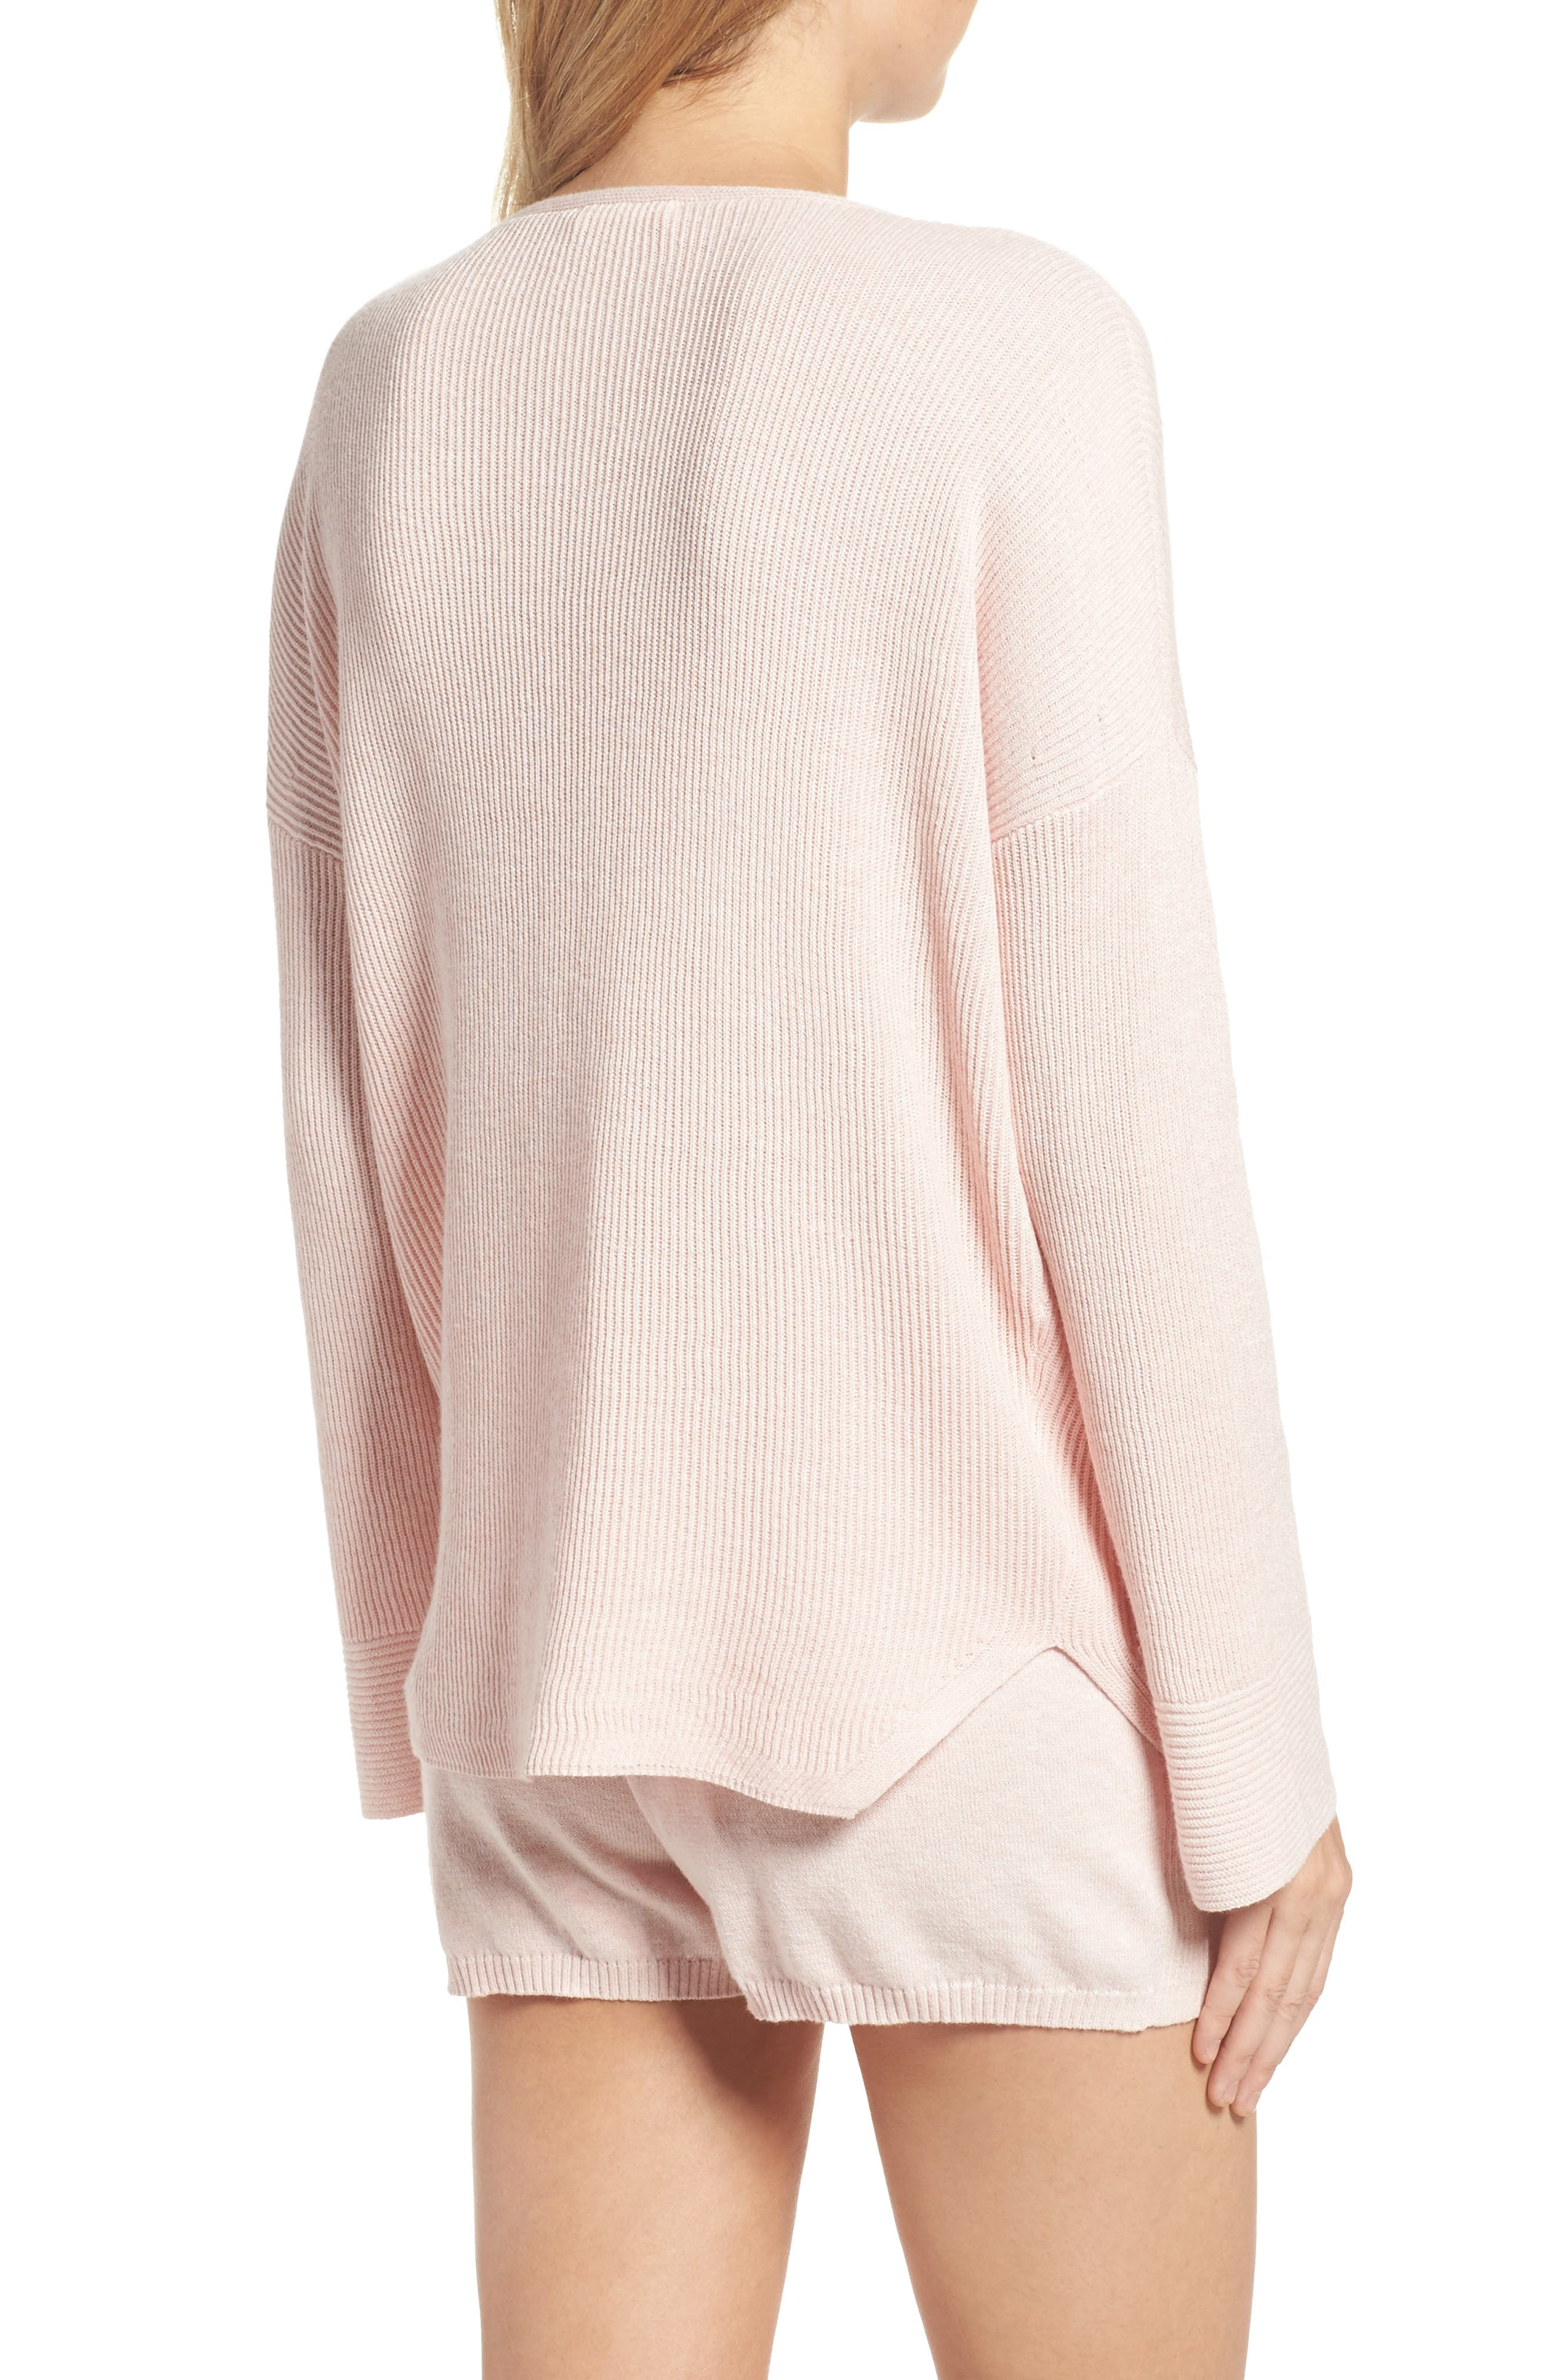 Veronica Lounge Pullover,                             Alternate thumbnail 2, color,                             Soft Pink